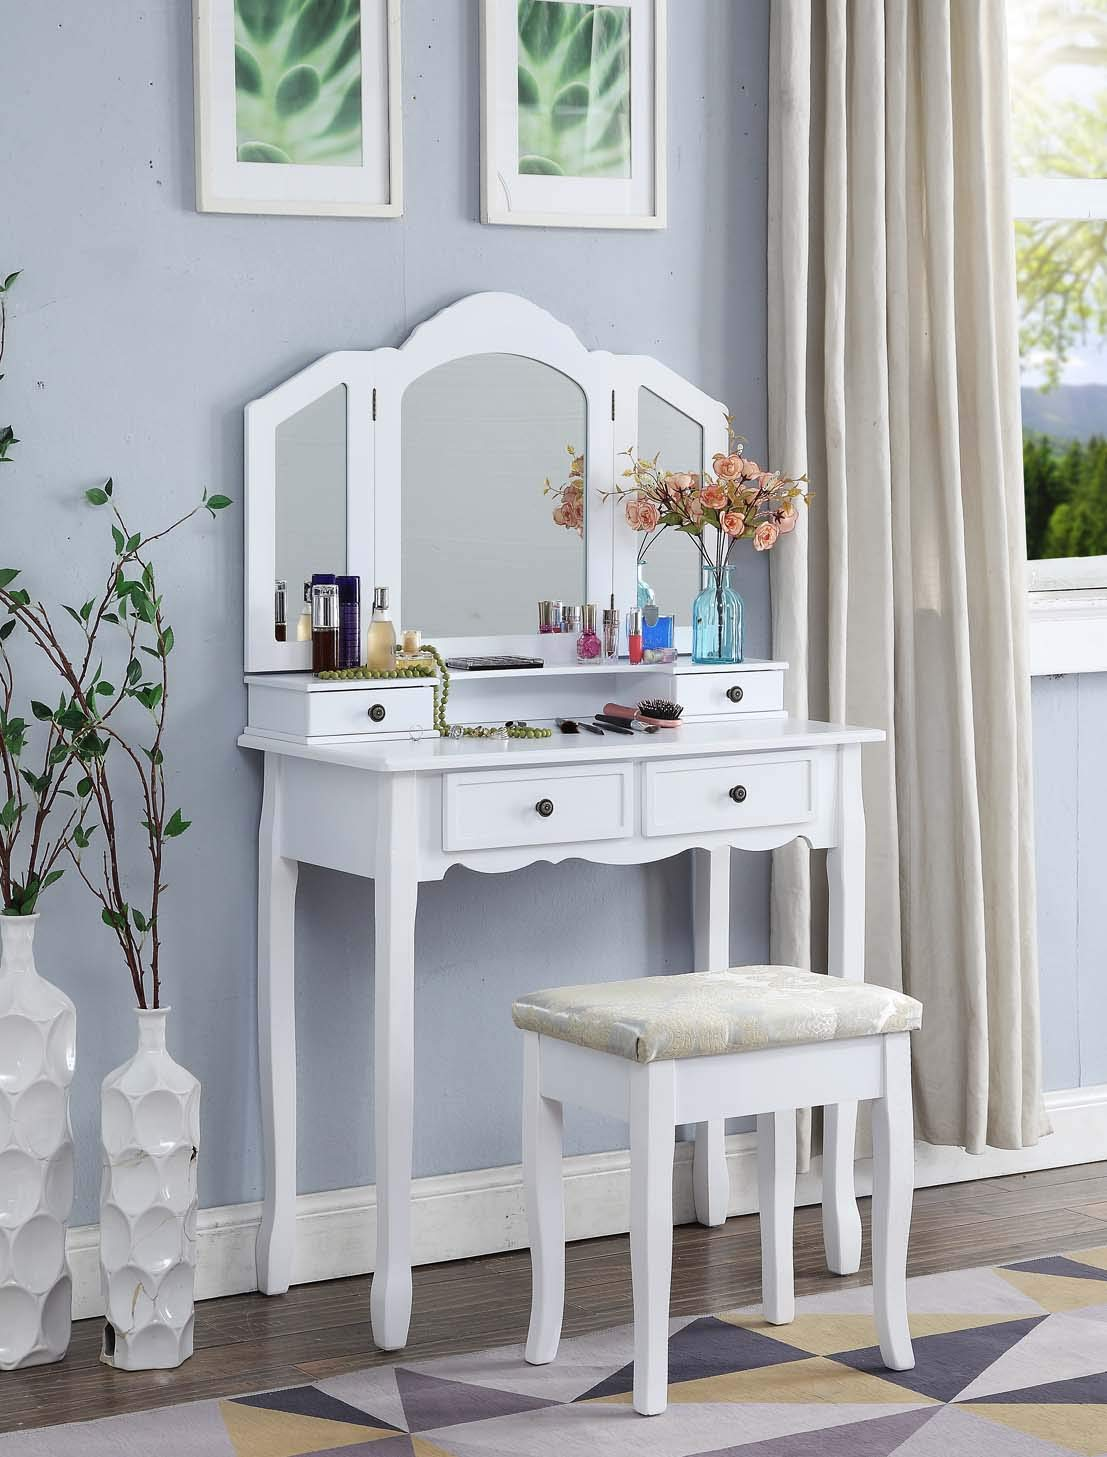 Roundhill Furniture Sanlo White Wooden Vanity, Make Up Table and Stool Set by Roundhill Furniture